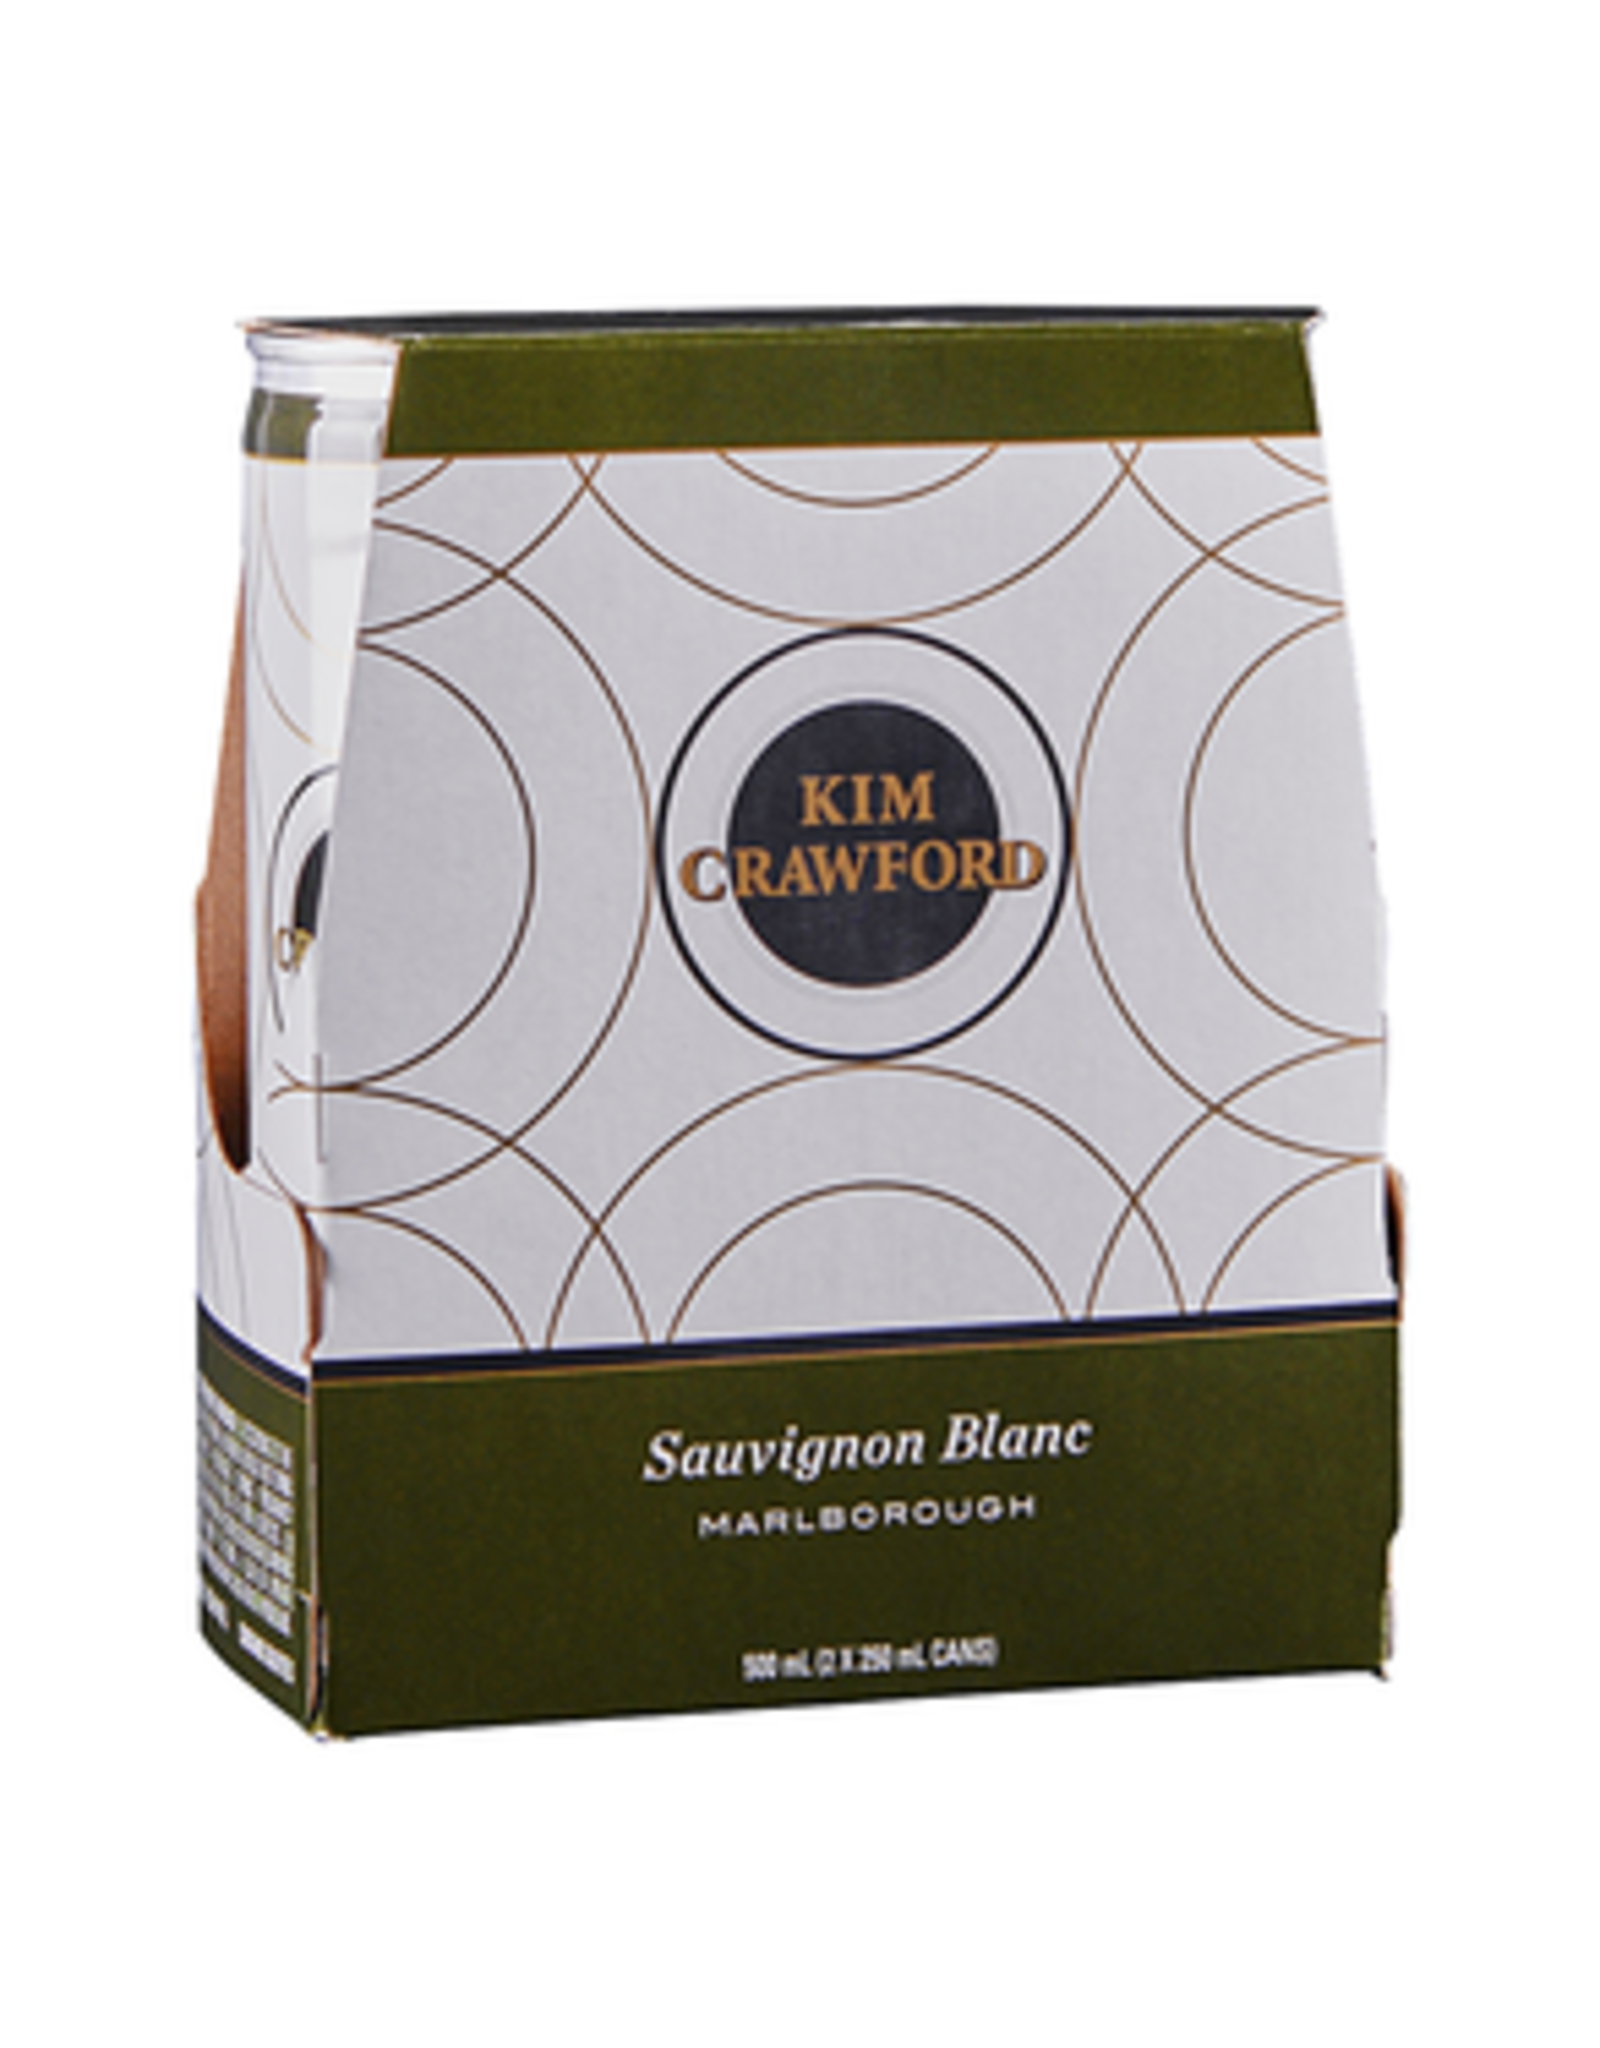 Kim Crawford Sauvignon Blanc 500 ml can 2-pack